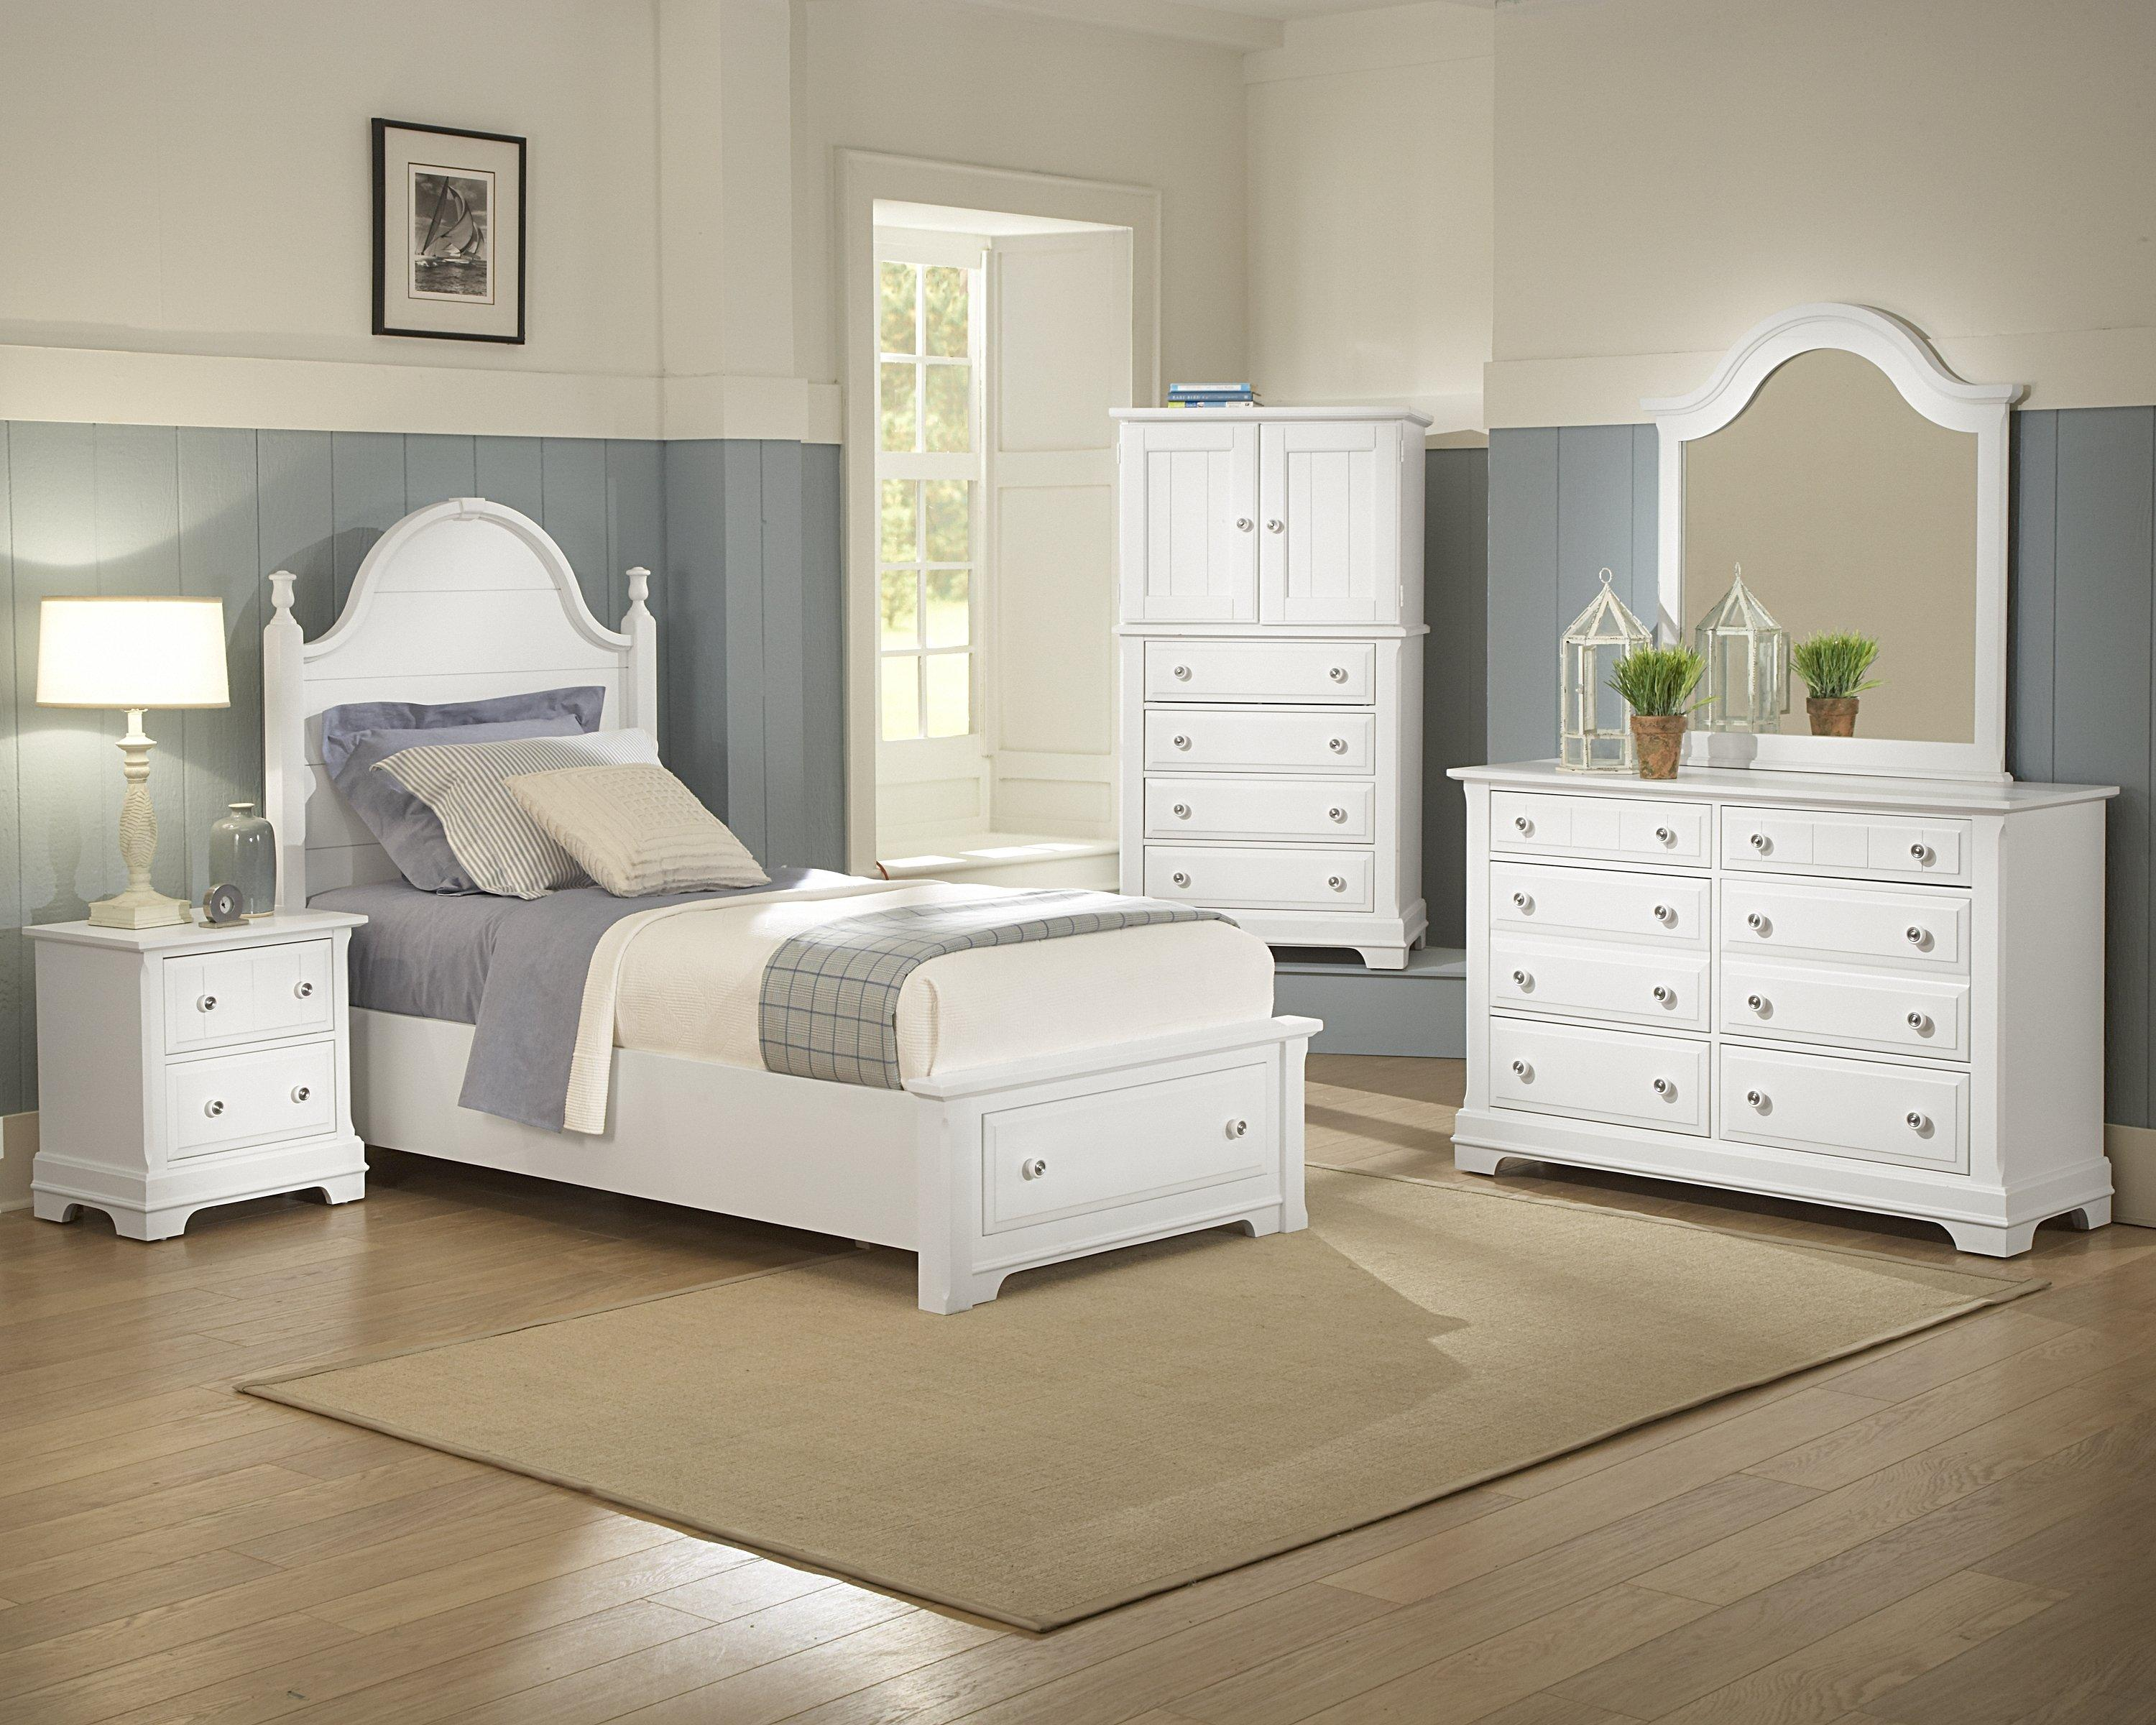 Vaughan Bassett Cottage King Bedroom Group - Item Number: BB24 K Bedroom Group 6